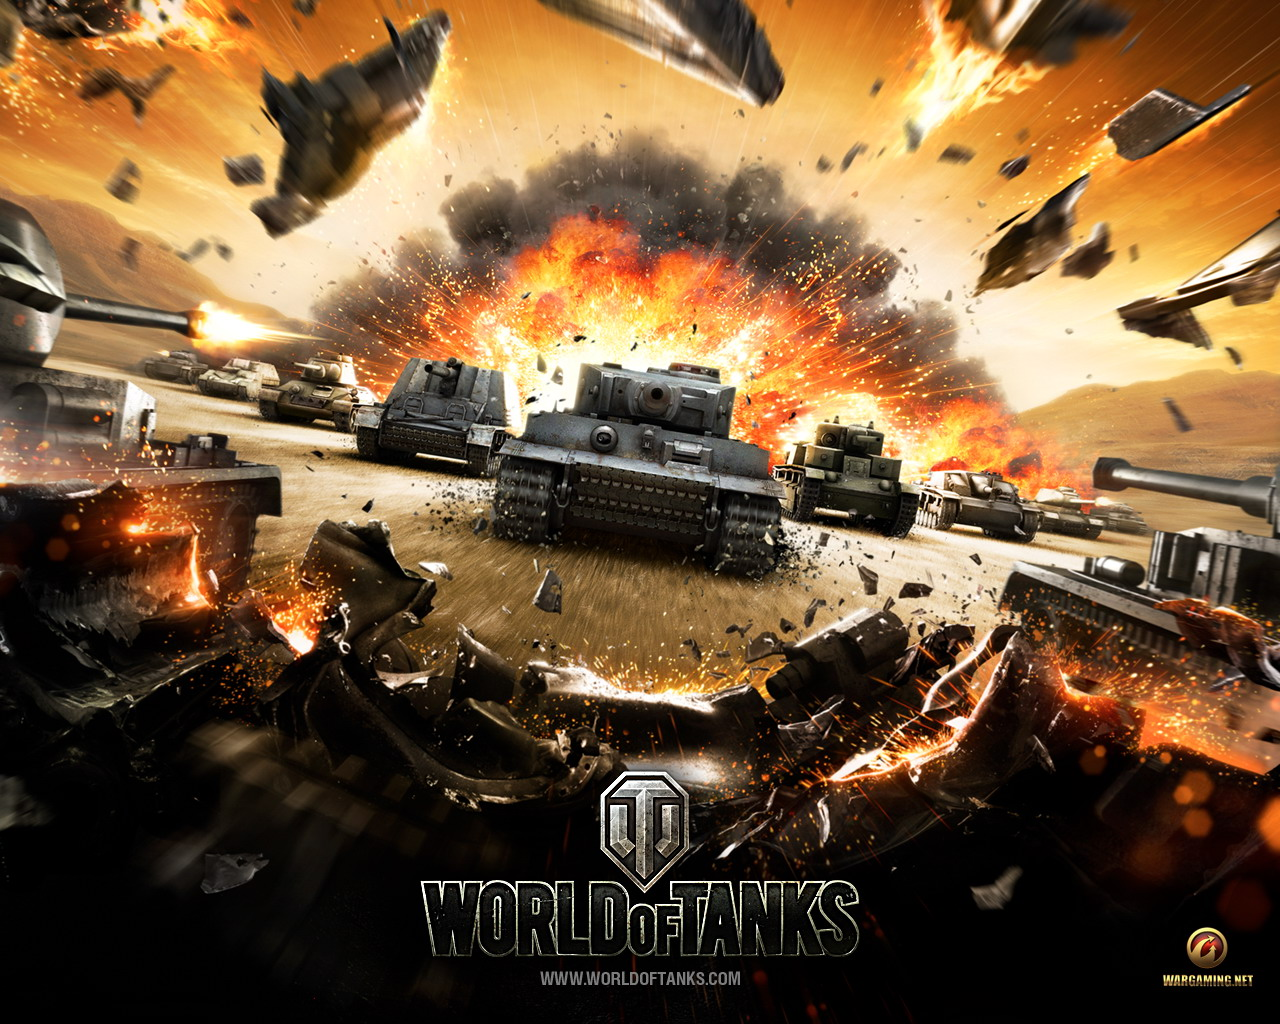 Wargaming.net Golden-лига, I сезон, VIII тур